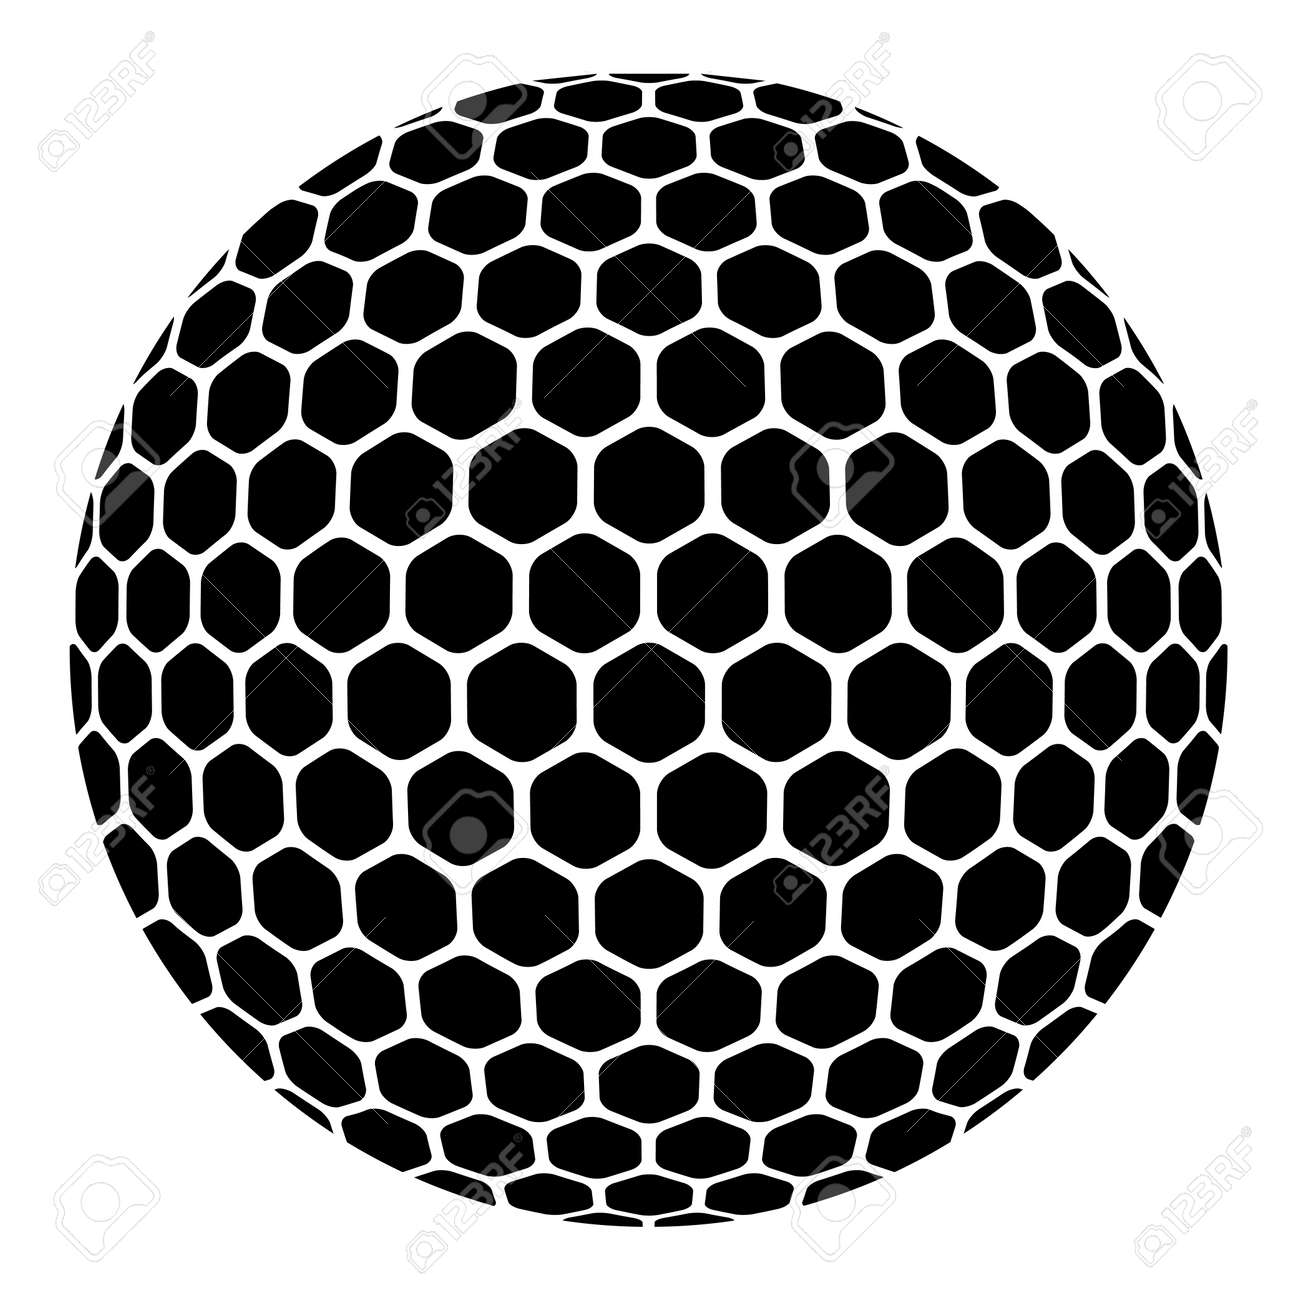 vector golf ball royalty free cliparts vectors and stock rh 123rf com Golf Ball Dimples On Car Purpose of Golf Ball Dimples